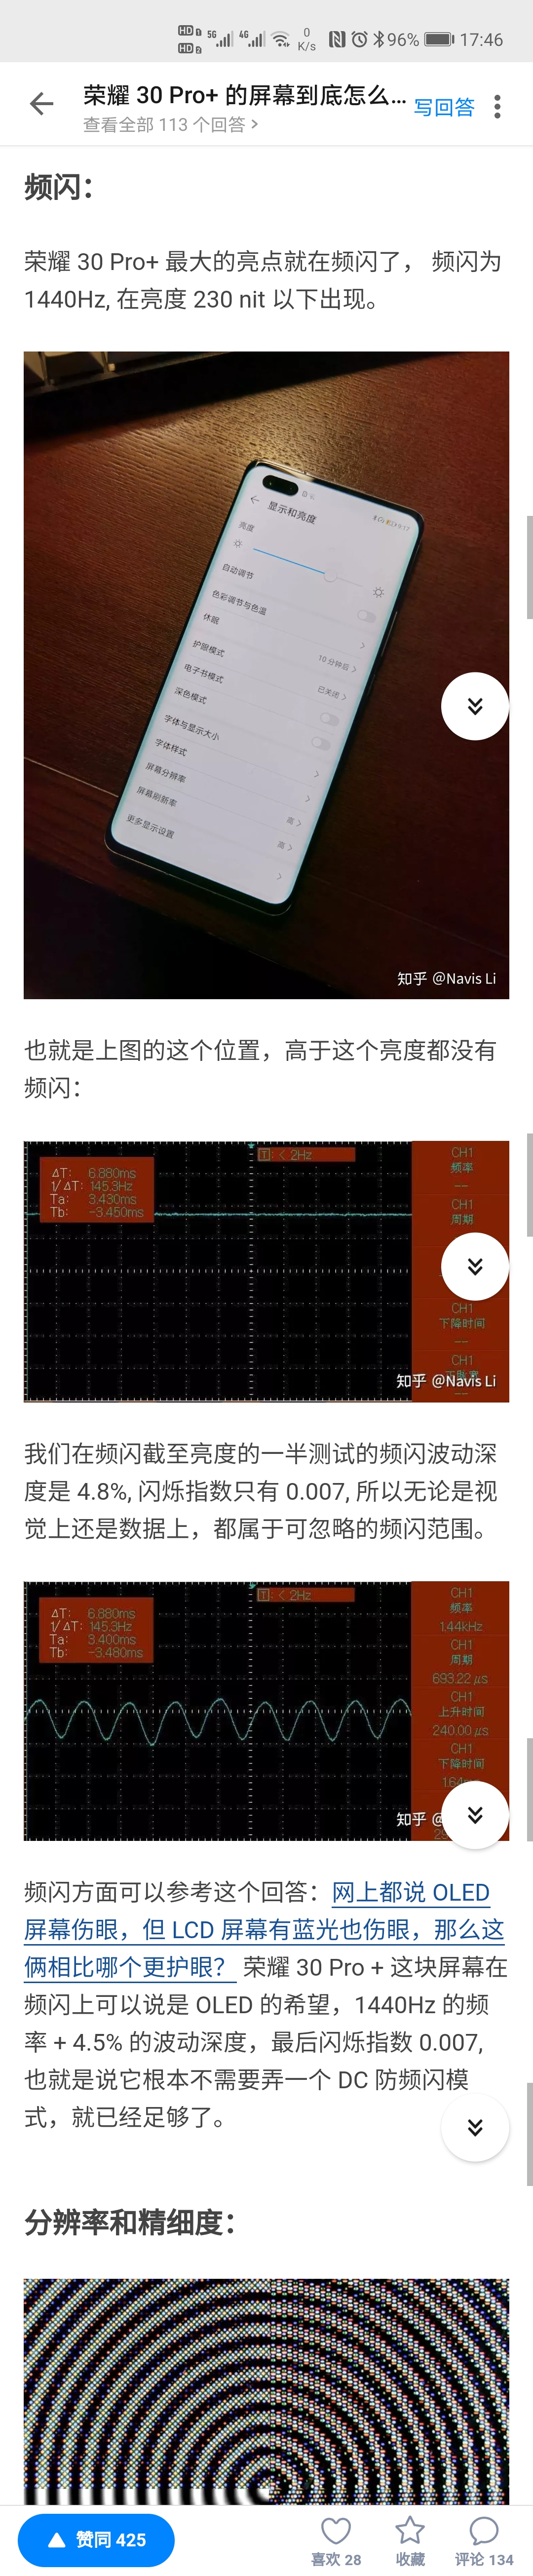 Screenshot_20200517_174608_com.zhihu.android.jpg